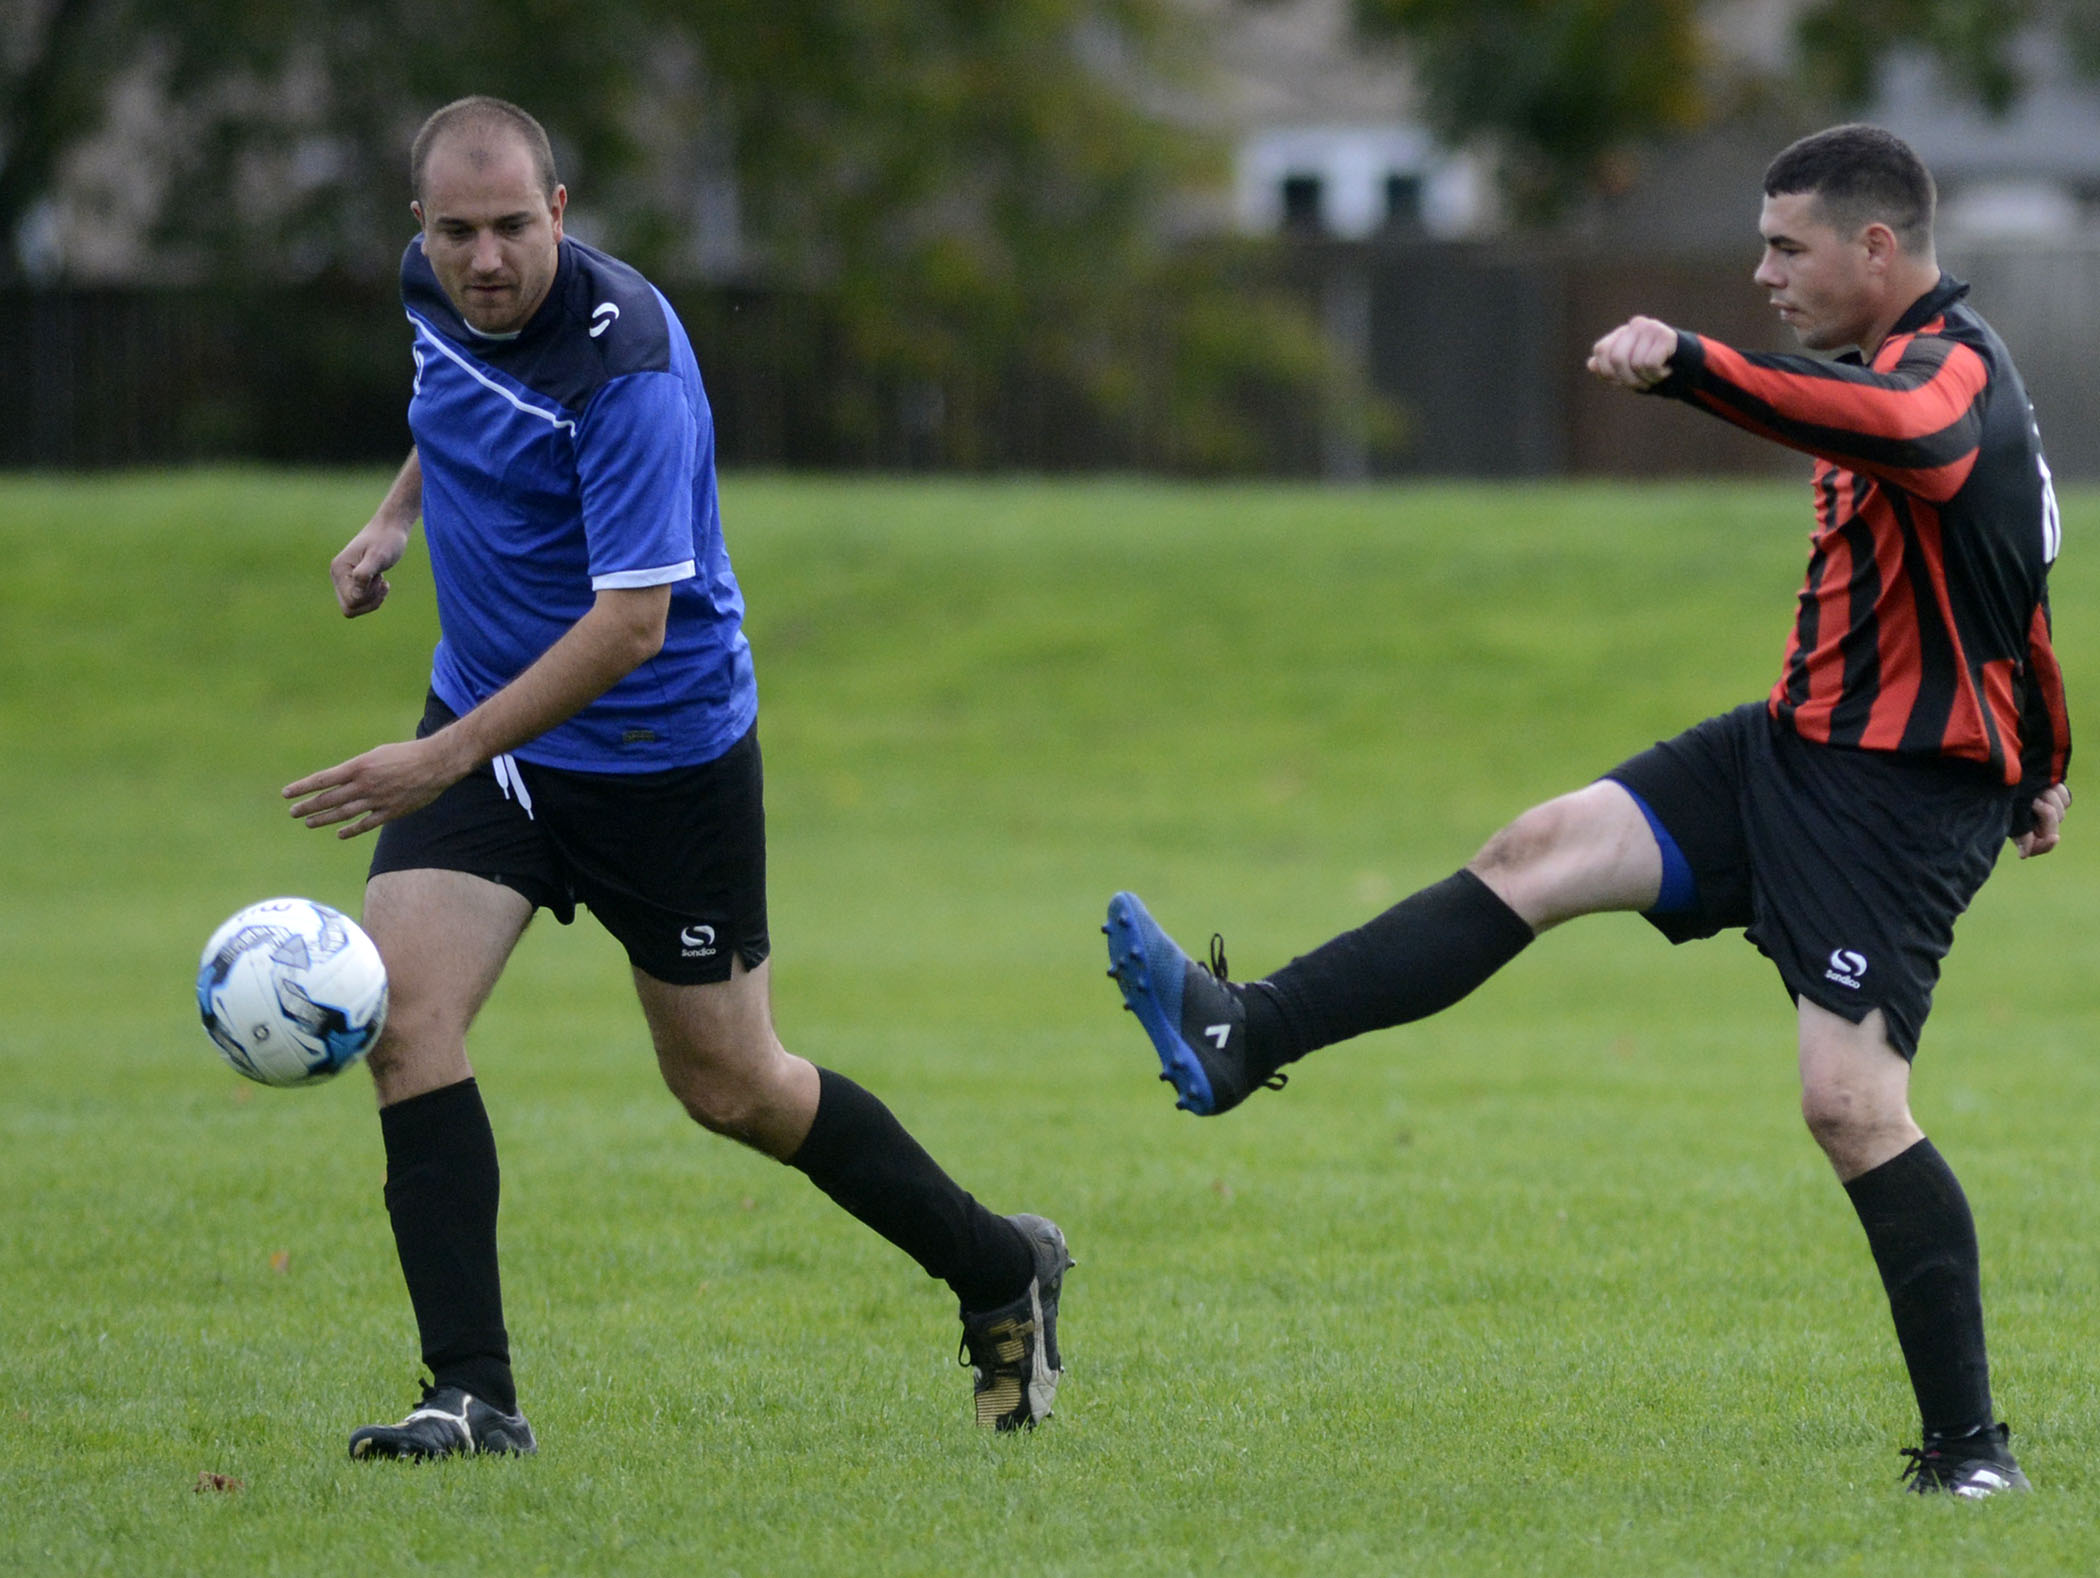 Bracknell Royals (blue) beat Finchampstead Athletic A 3-0